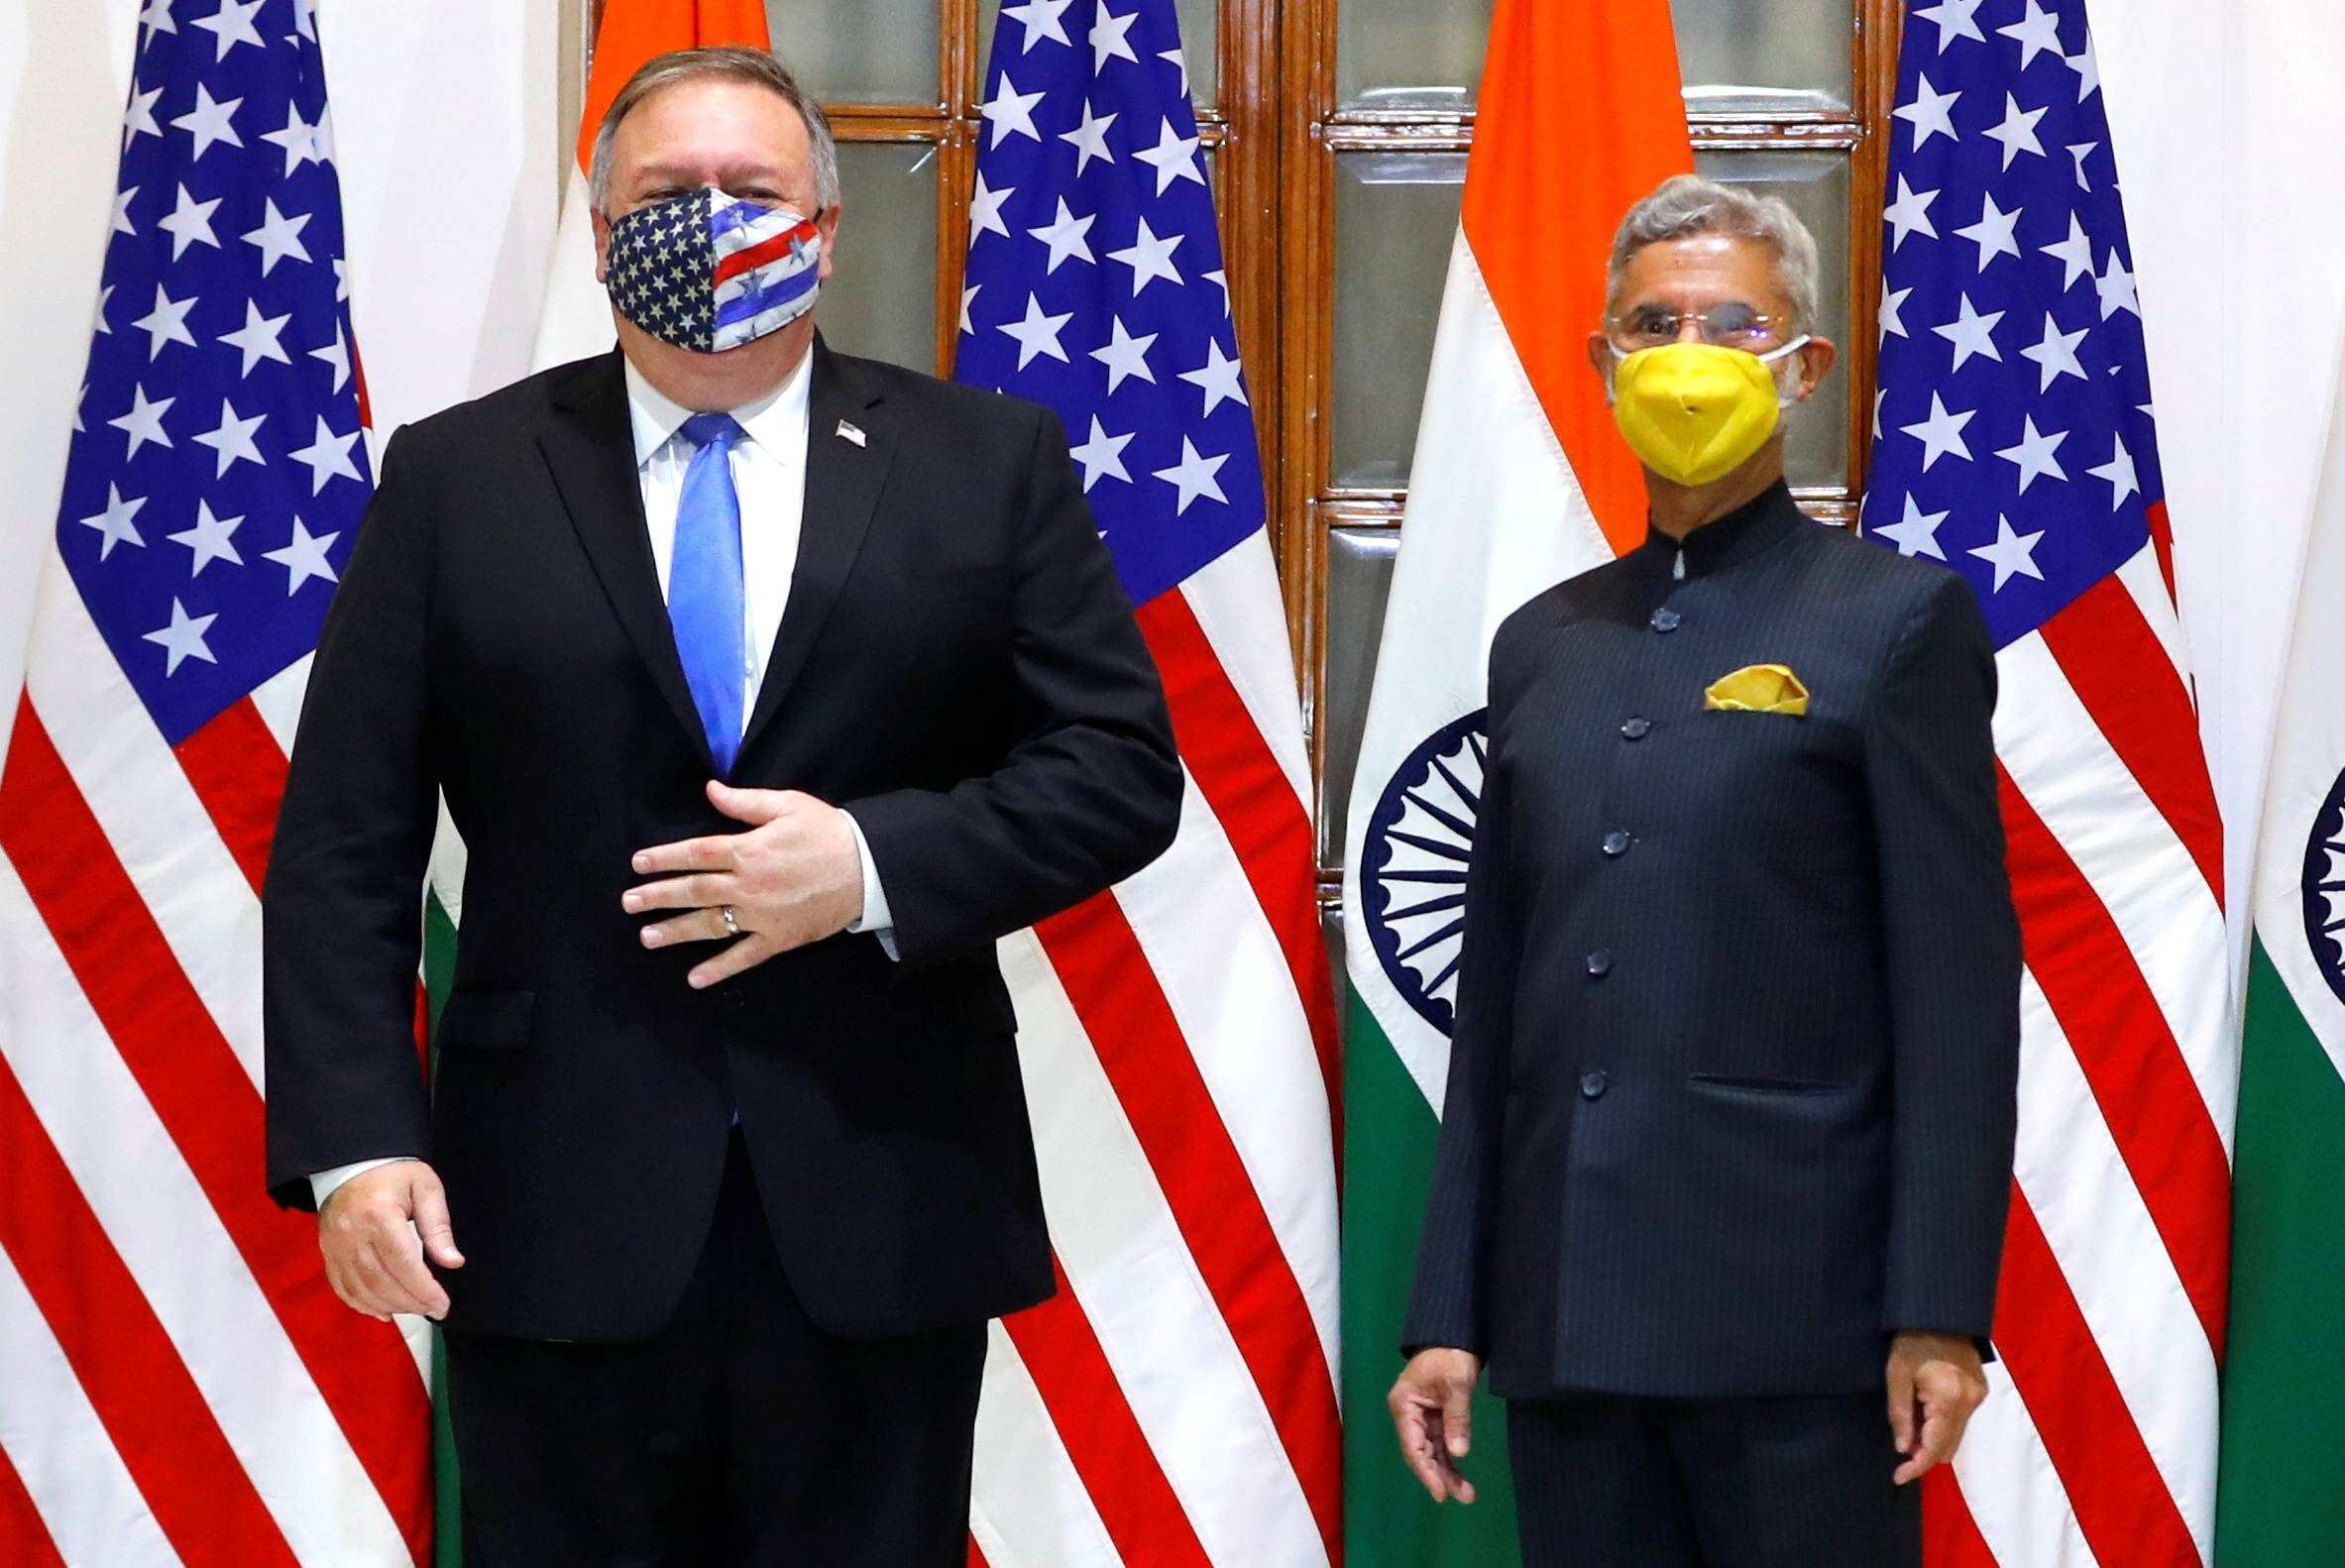 U.S. Secretary of State Mike Pompeo and Indian Foreign Minister Subrahmanyam Jaishankar in New Delhi on Monday   POOL / VIA REUTERS